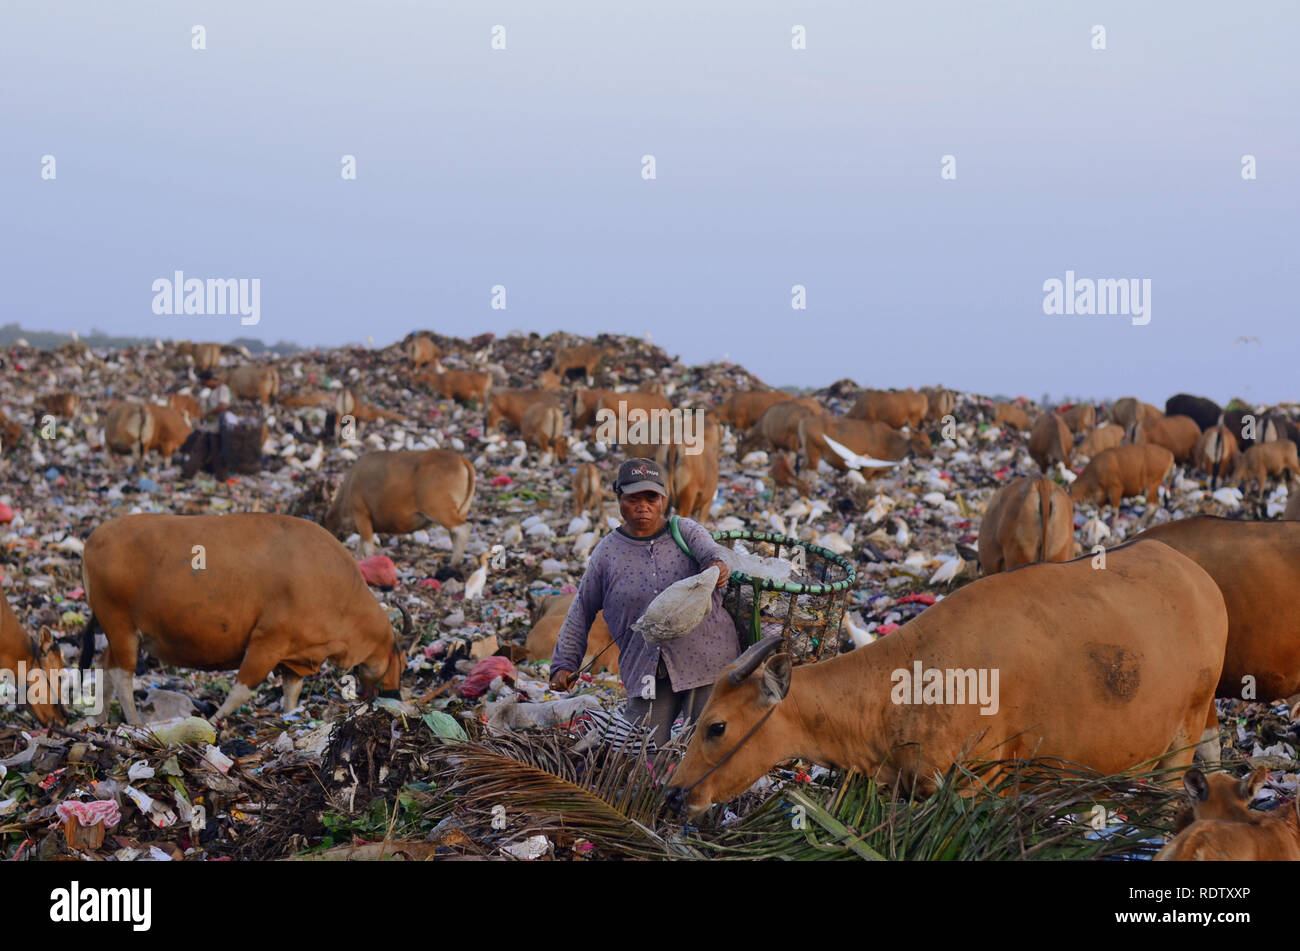 Women collect rubbish at the landfill, surrounded by cows - Stock Image